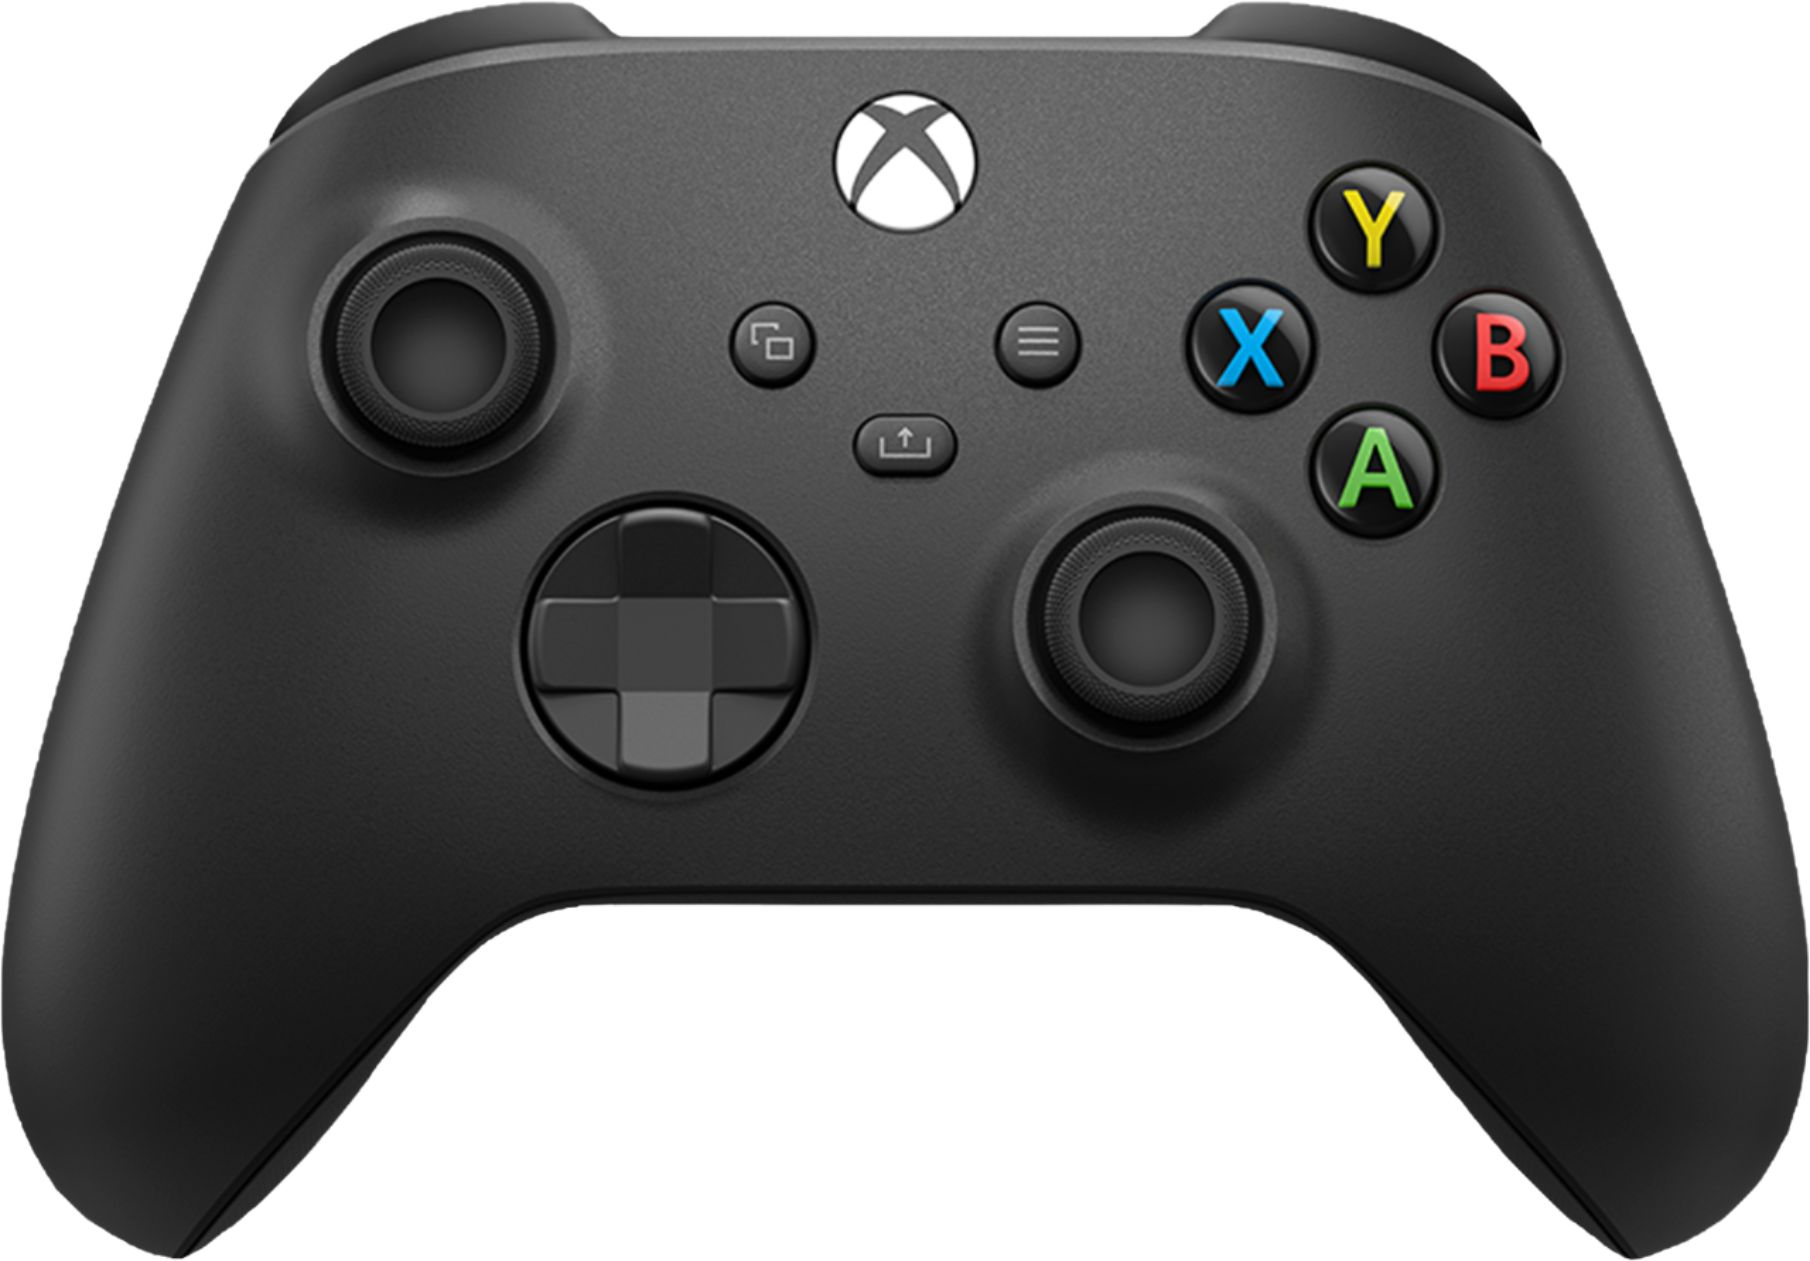 Xbox Wireless Controller v4 (Carbon Black)